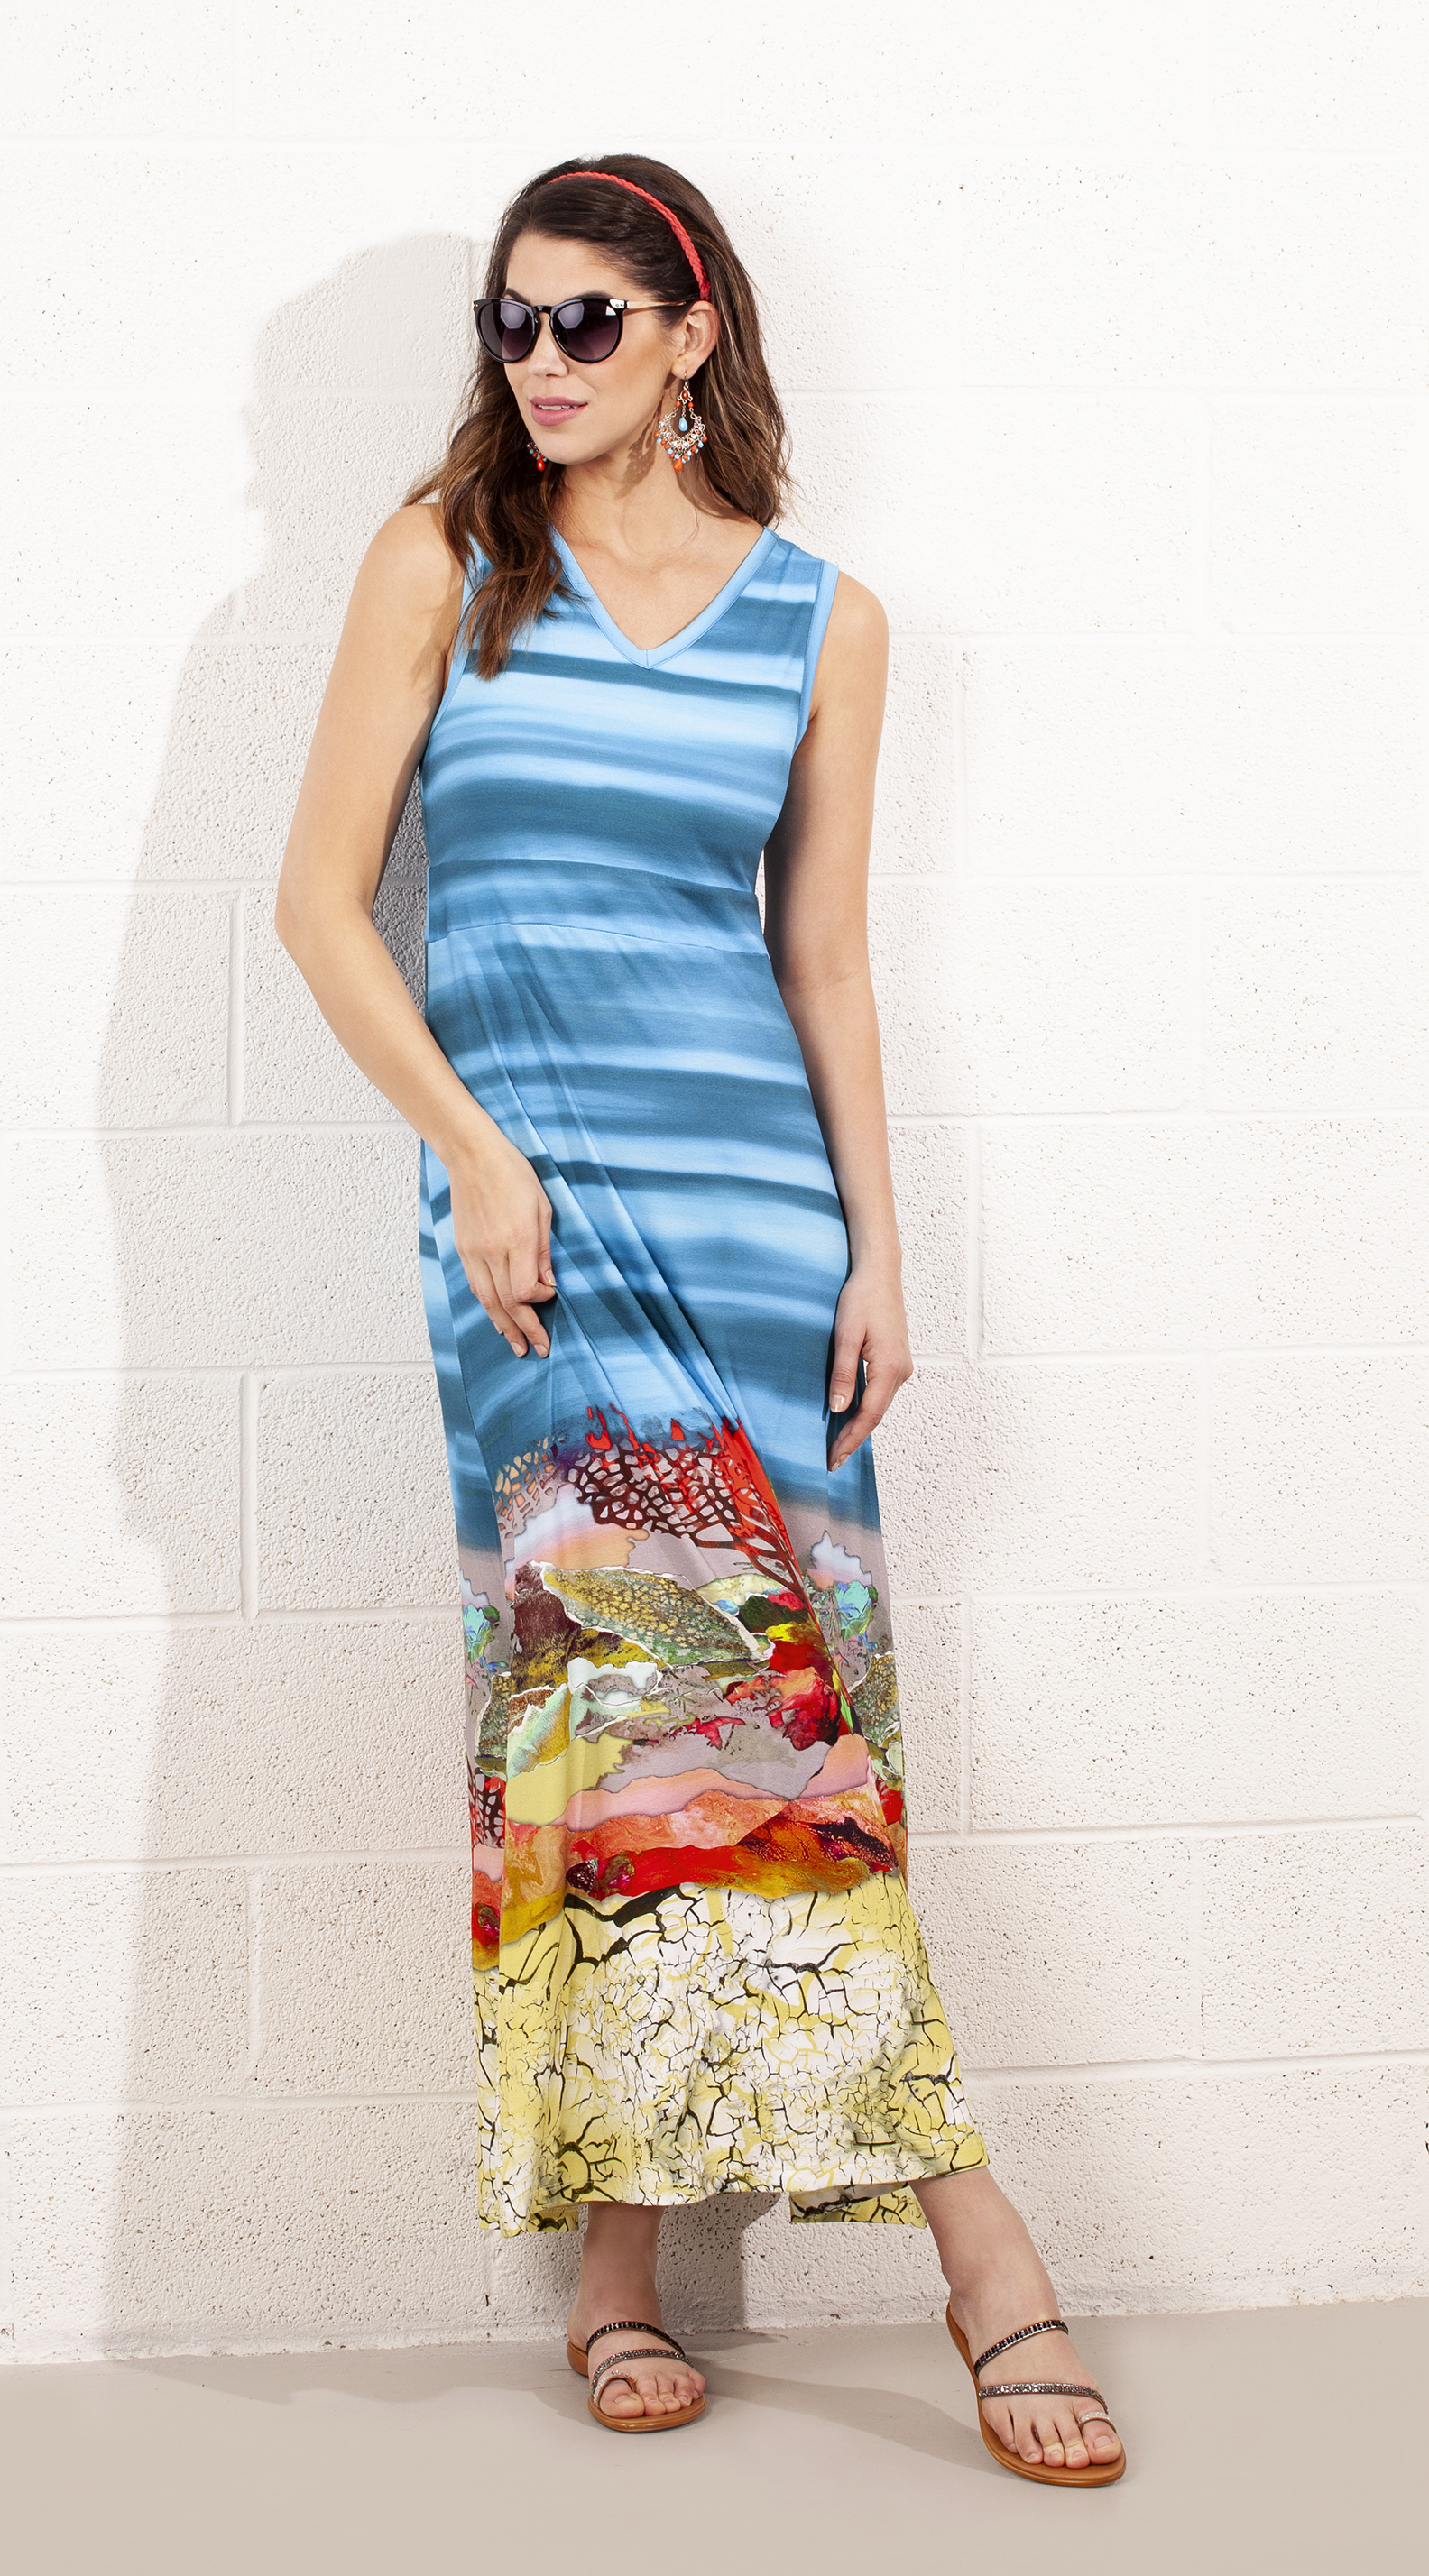 Dolcezza: Under The Sea Coral Scene Art Maxi Dress (1 Left!) DOLCEZZA_19213_N